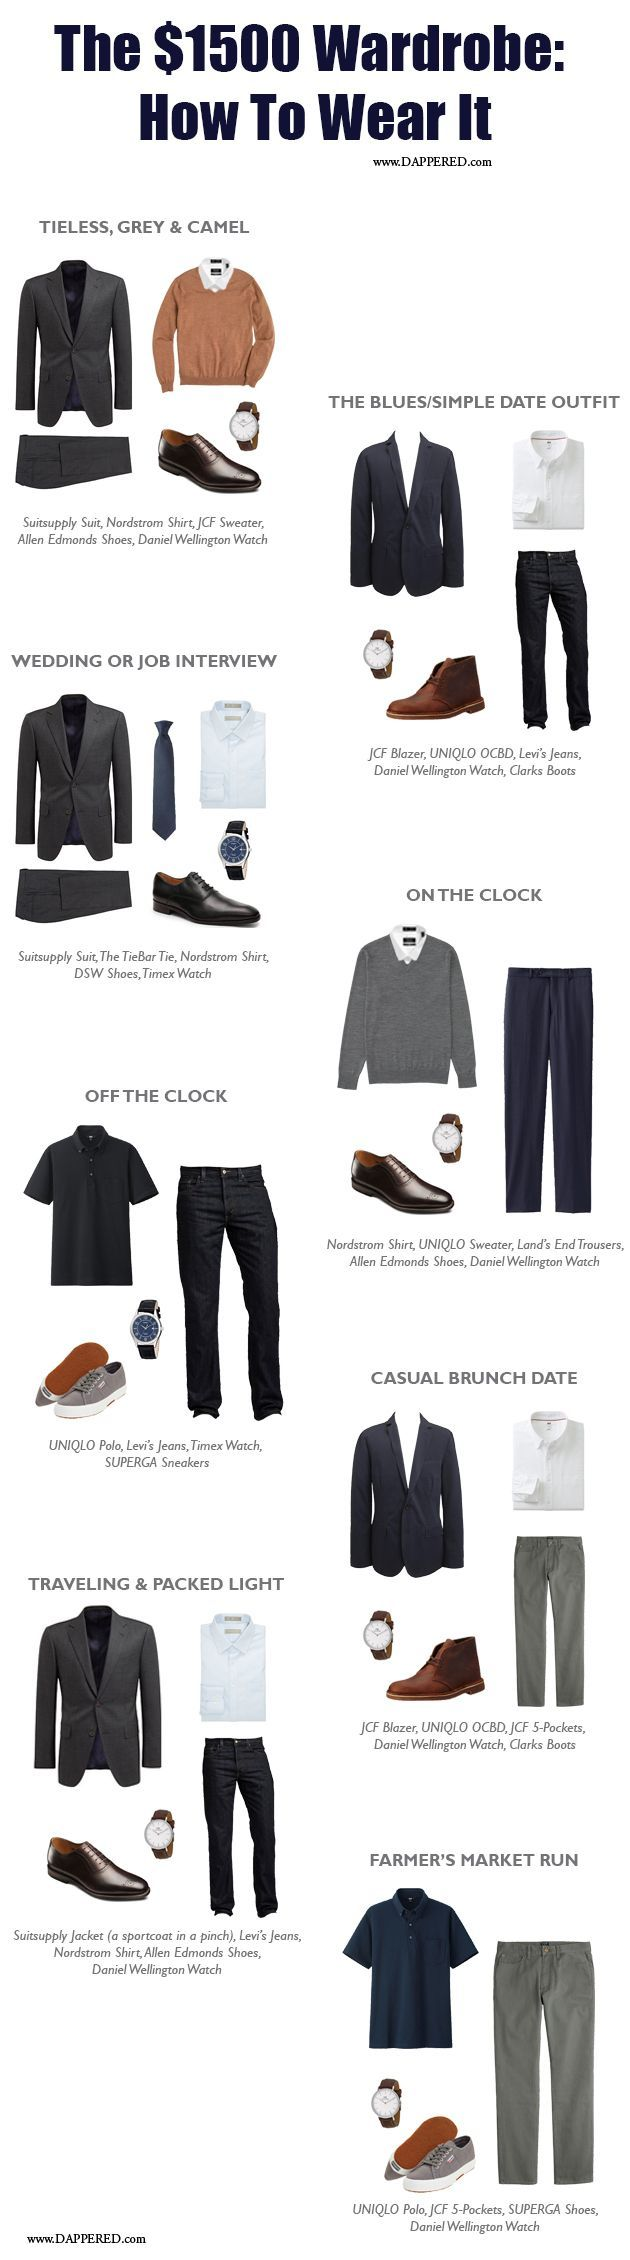 These are all fantastic suggestions from Dappered's $1,500 Wardrobe series. So great! #menswear